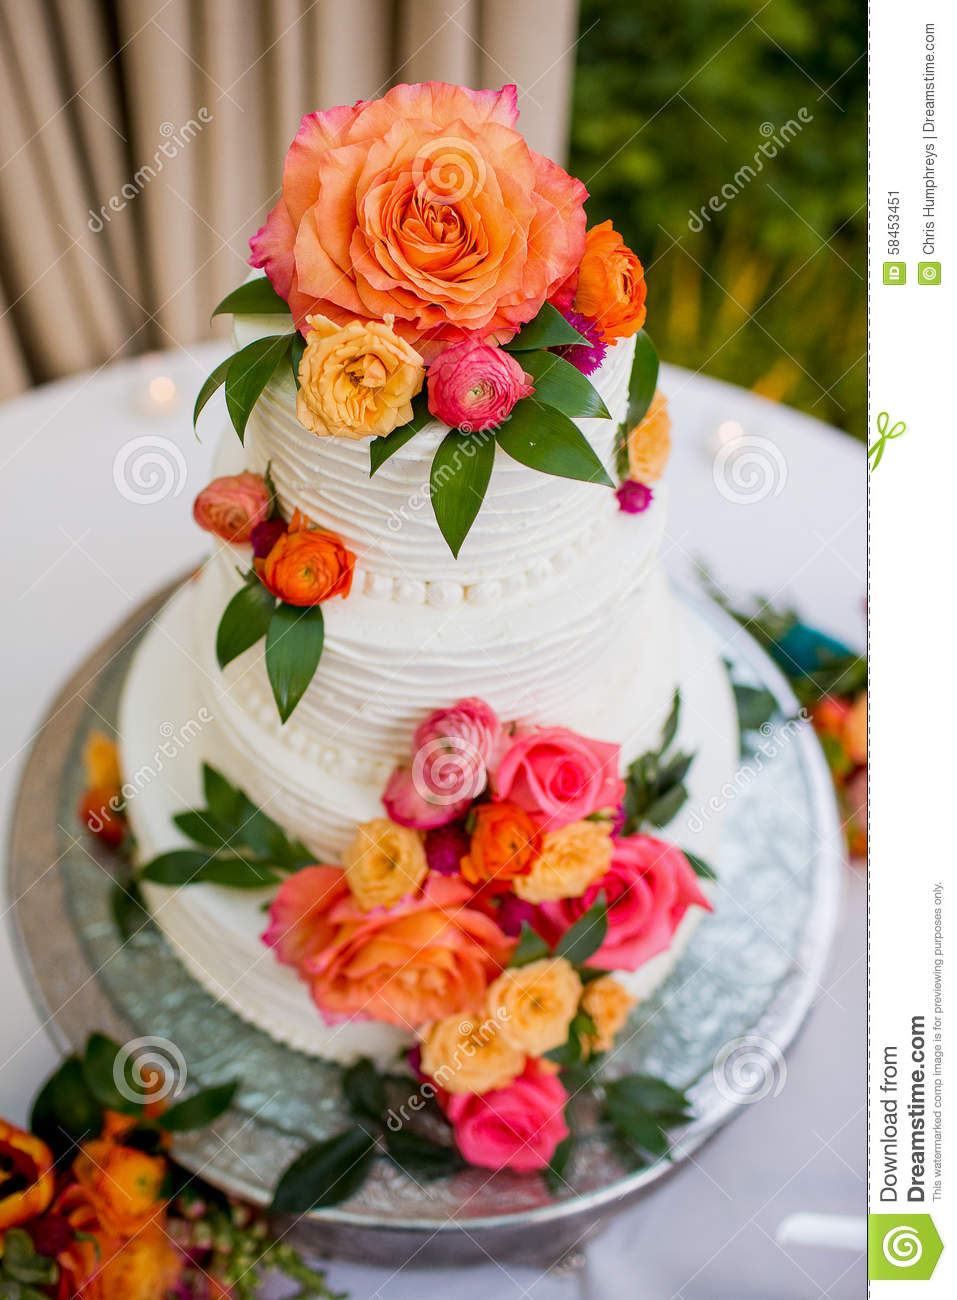 wedding cake with orange flowers wedding cake stock image image of celebration bridal 26931